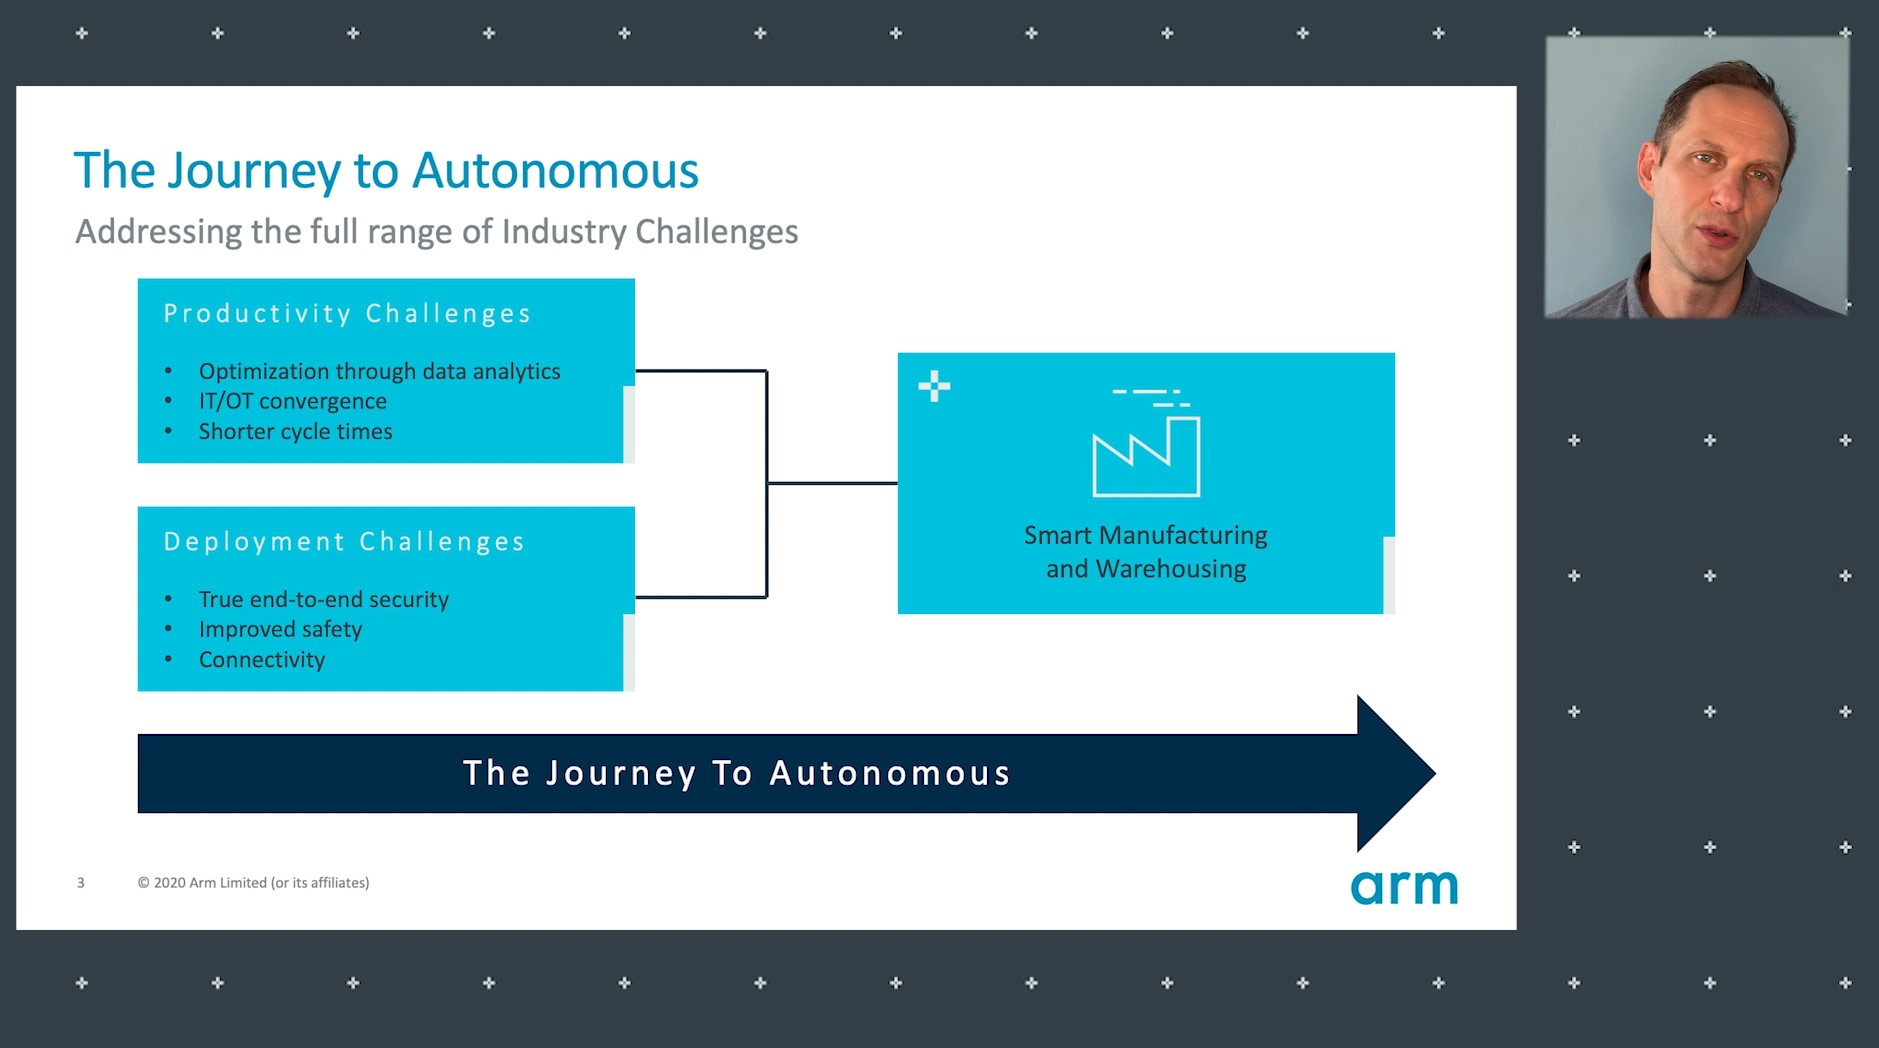 Arm journey to autonomous image Boards and Solutions